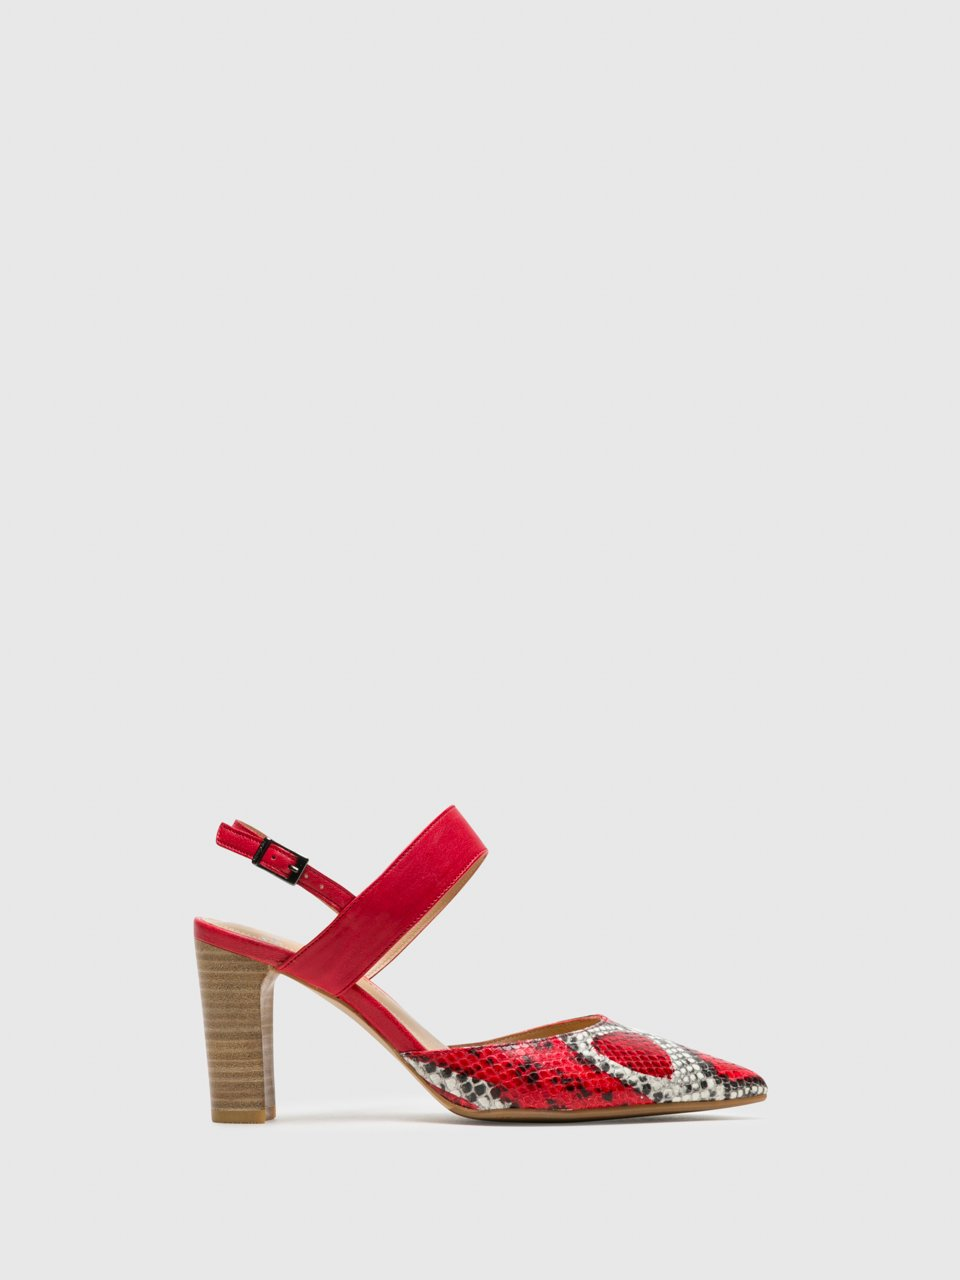 Perlato Red Sling-Back Pumps Shoes